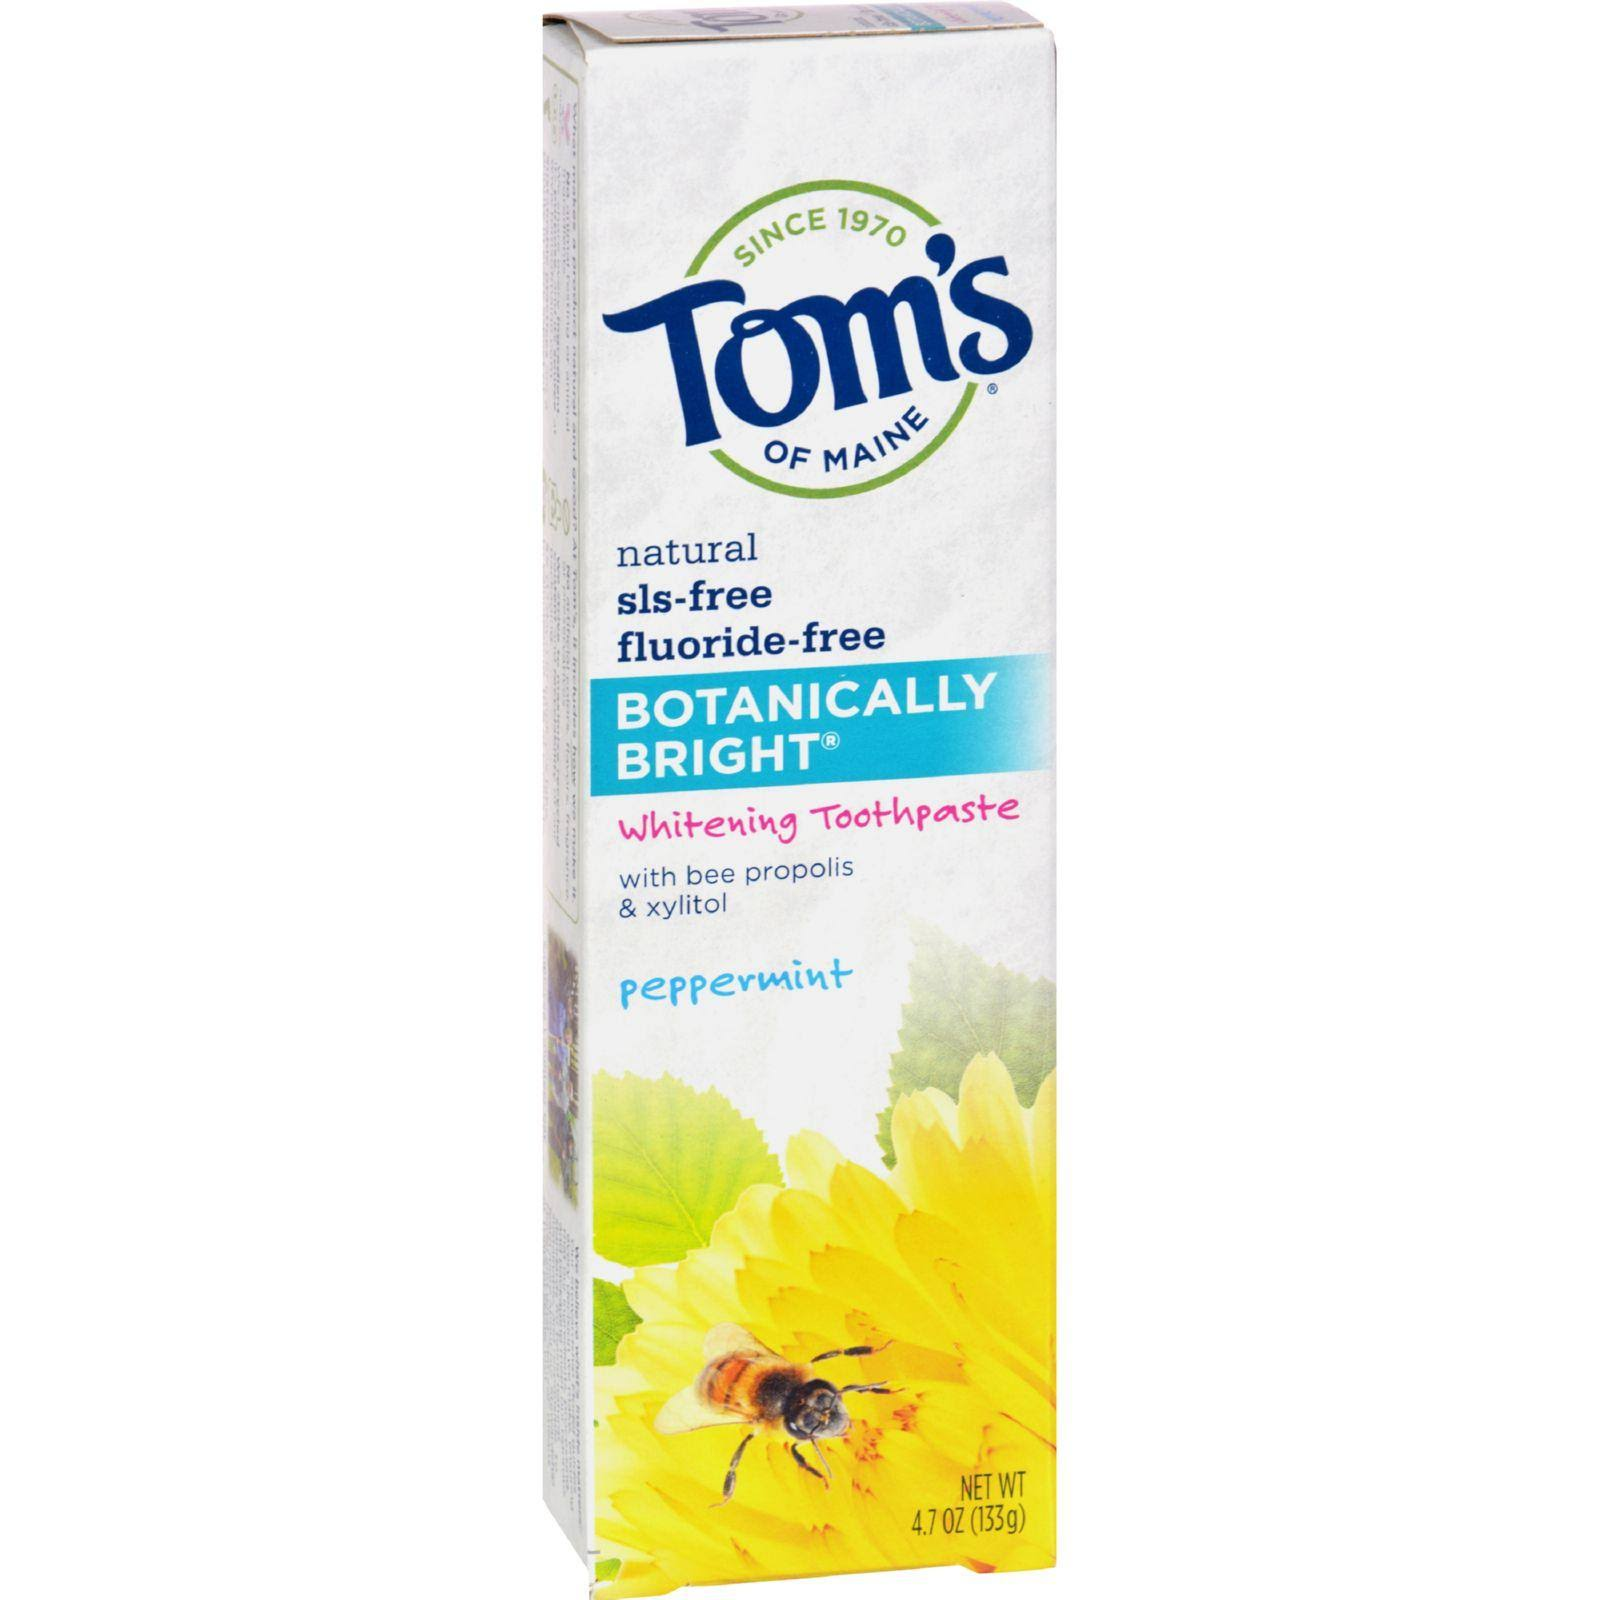 Toms of Main Botanically Bright Whitening Toothpaste - Peppermint, 4.7oz